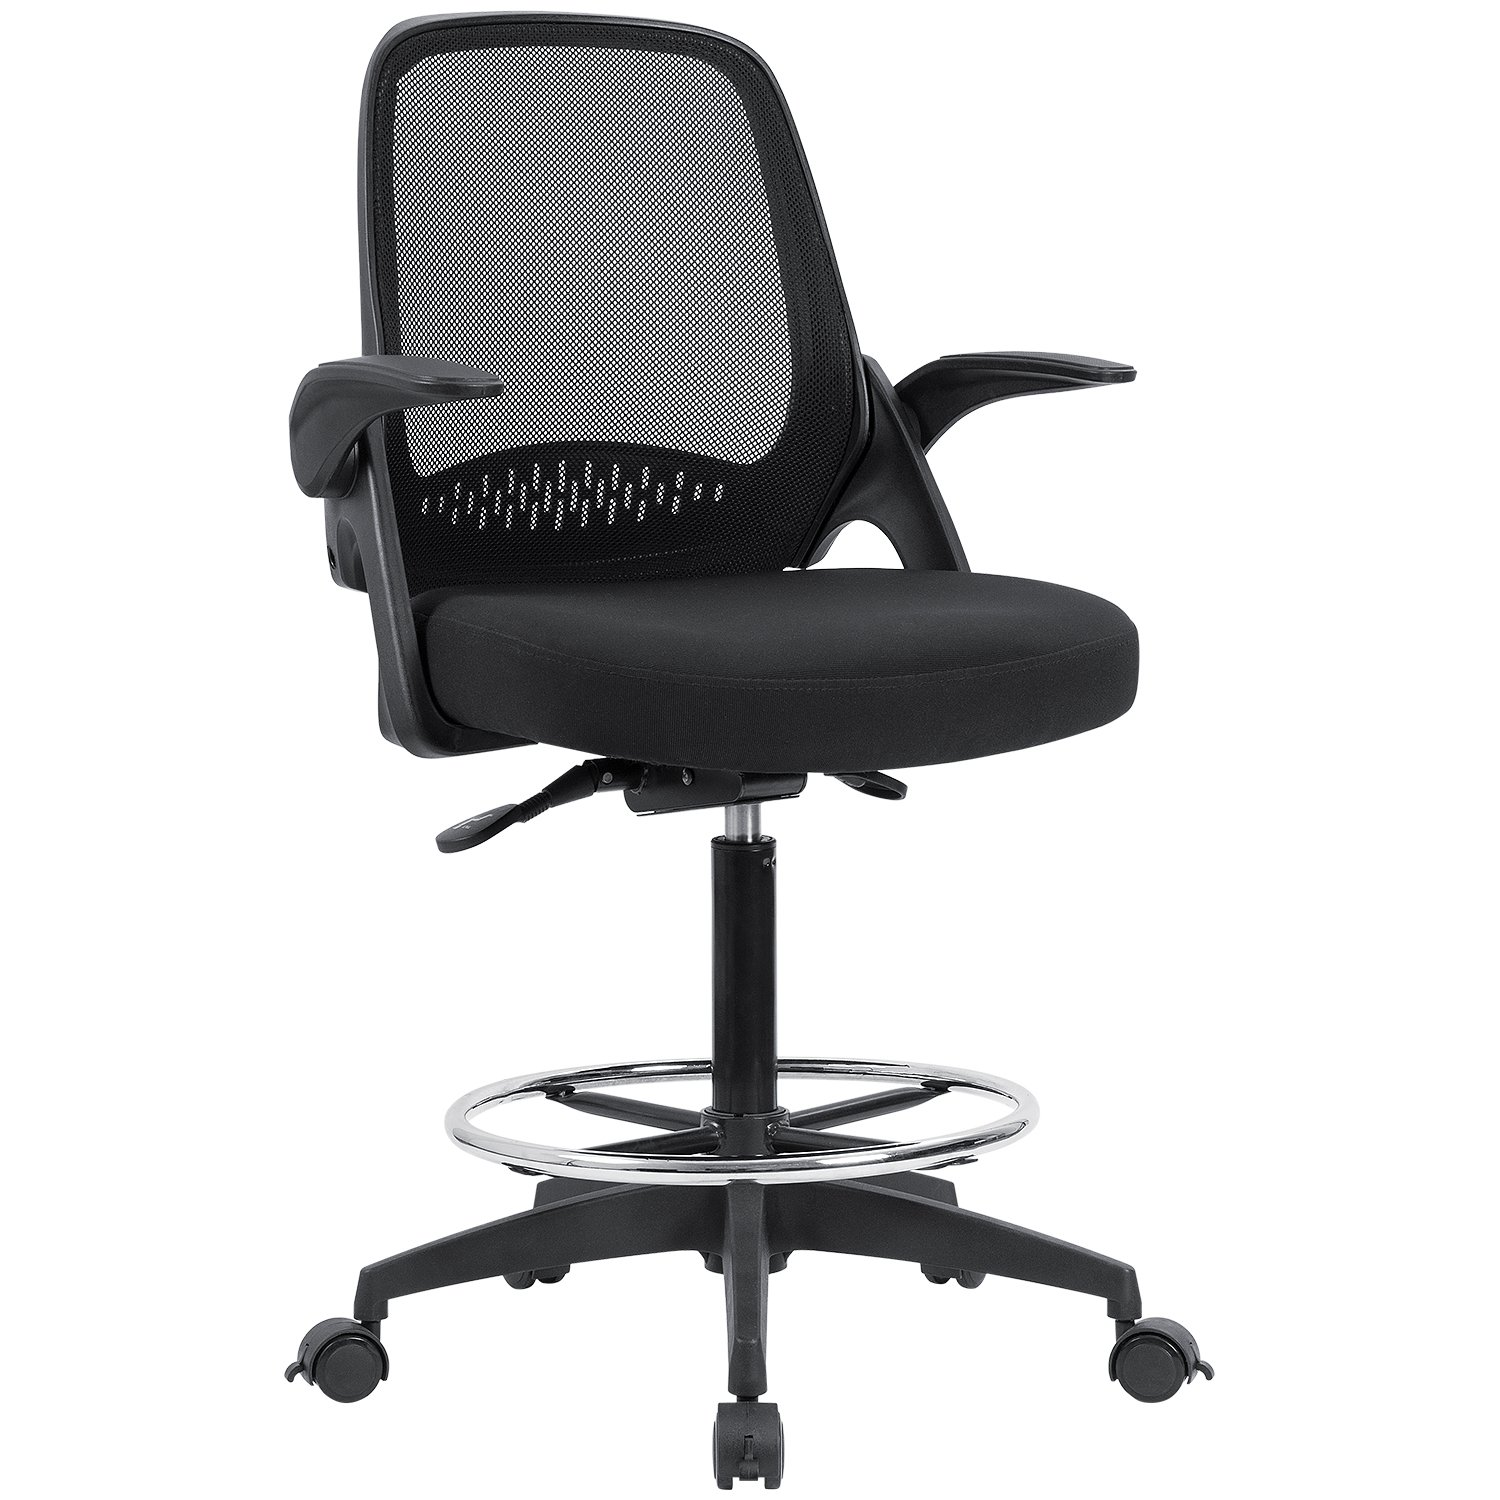 Devoko Office Drafting Chair With Lockable Wheel Executive Computer Standing Desk Chair Reception Tall Office Chair With Flip-up Arms And Adjustable Footrest Ring (Black)